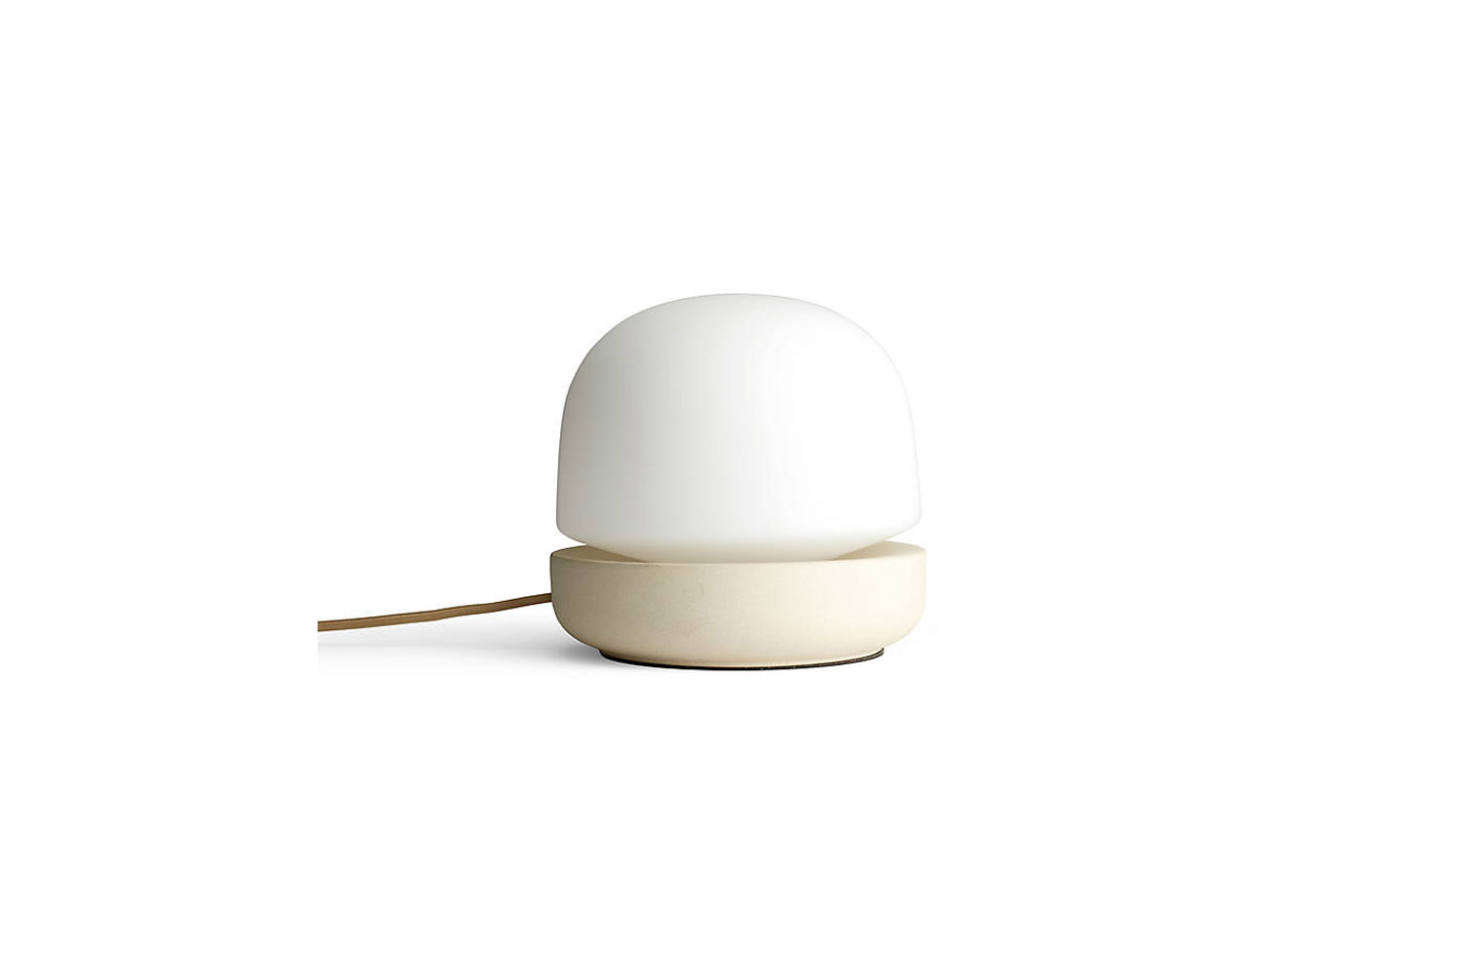 Designed by Norm Architects for Menu, the Stone Table Lamp is made with cream-colored glass and a porcelain base; $3.95 at Lumens.